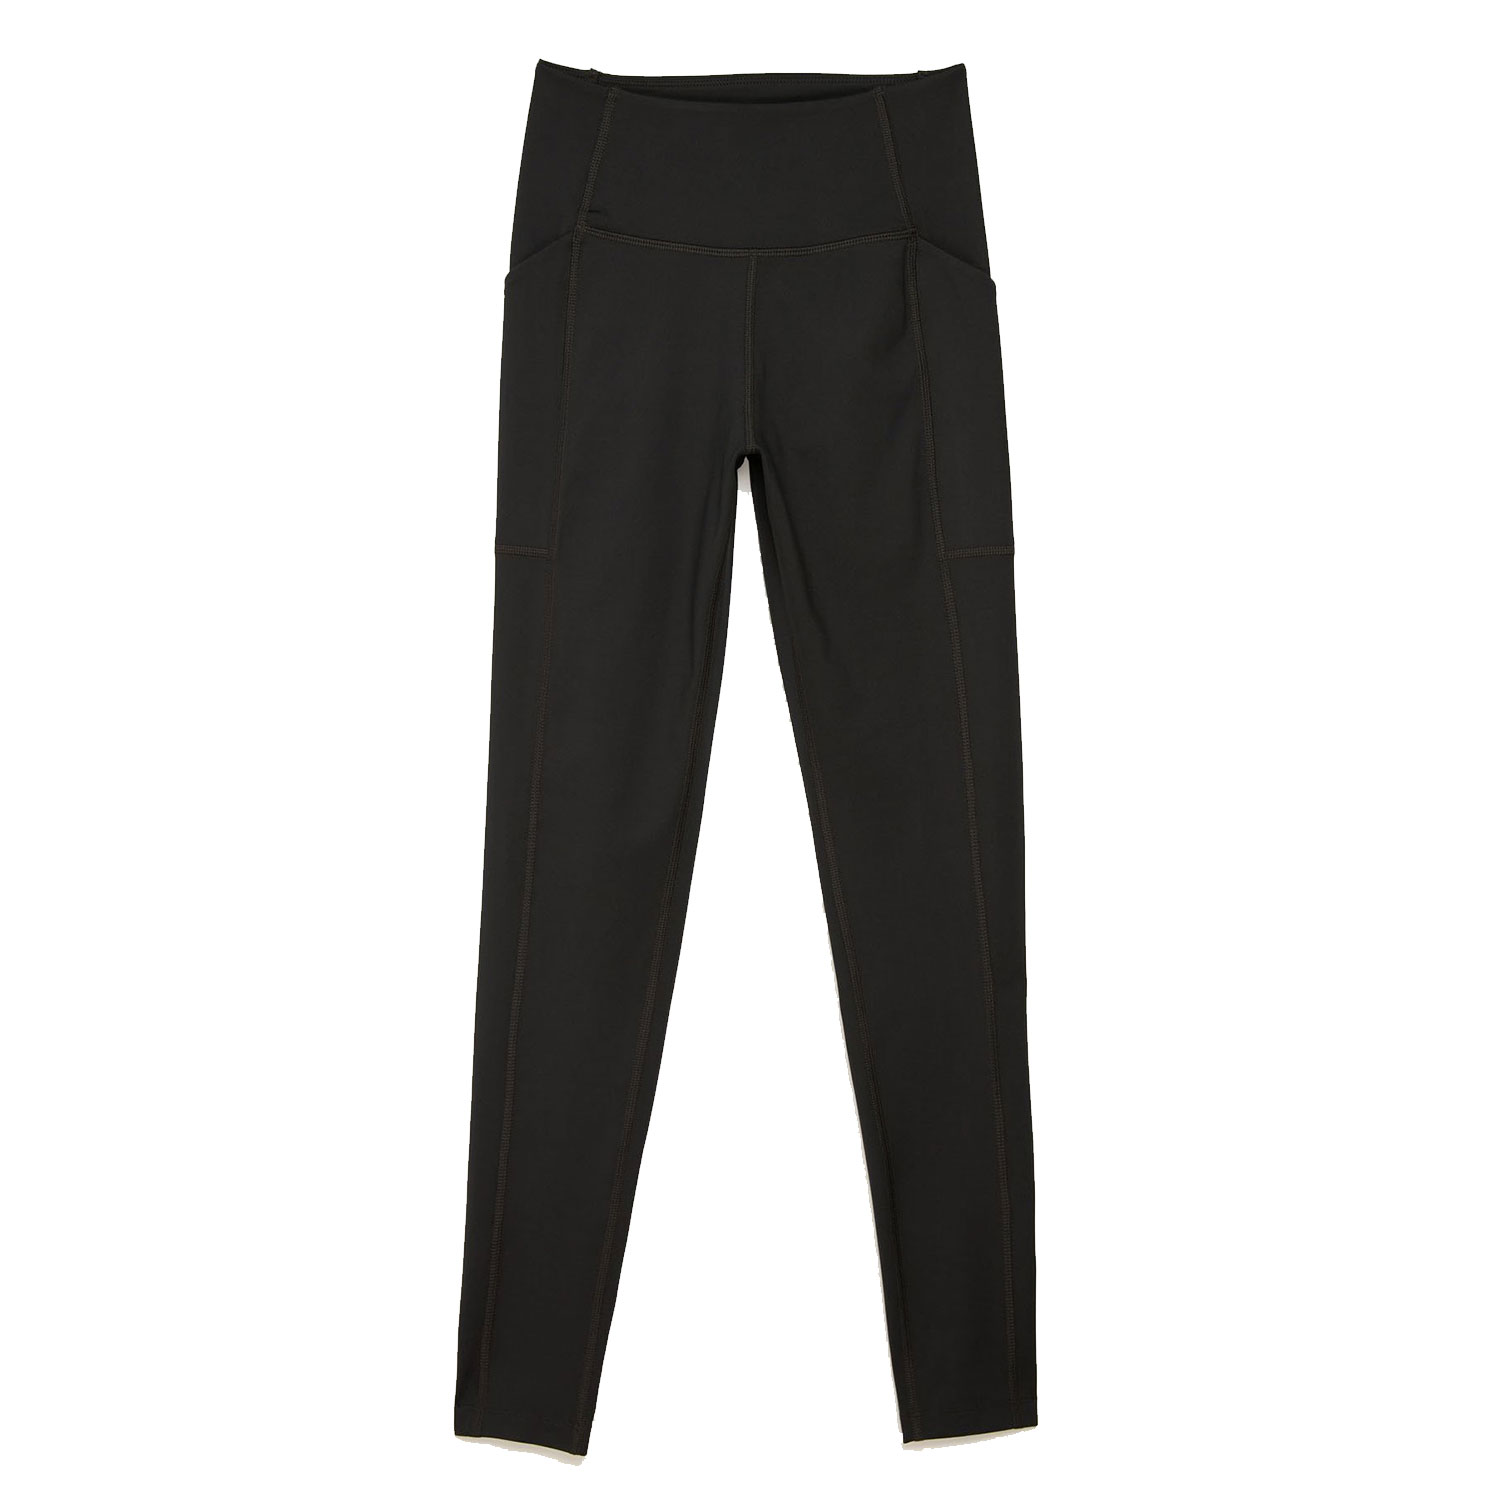 Black High-Rise Pocket Legging